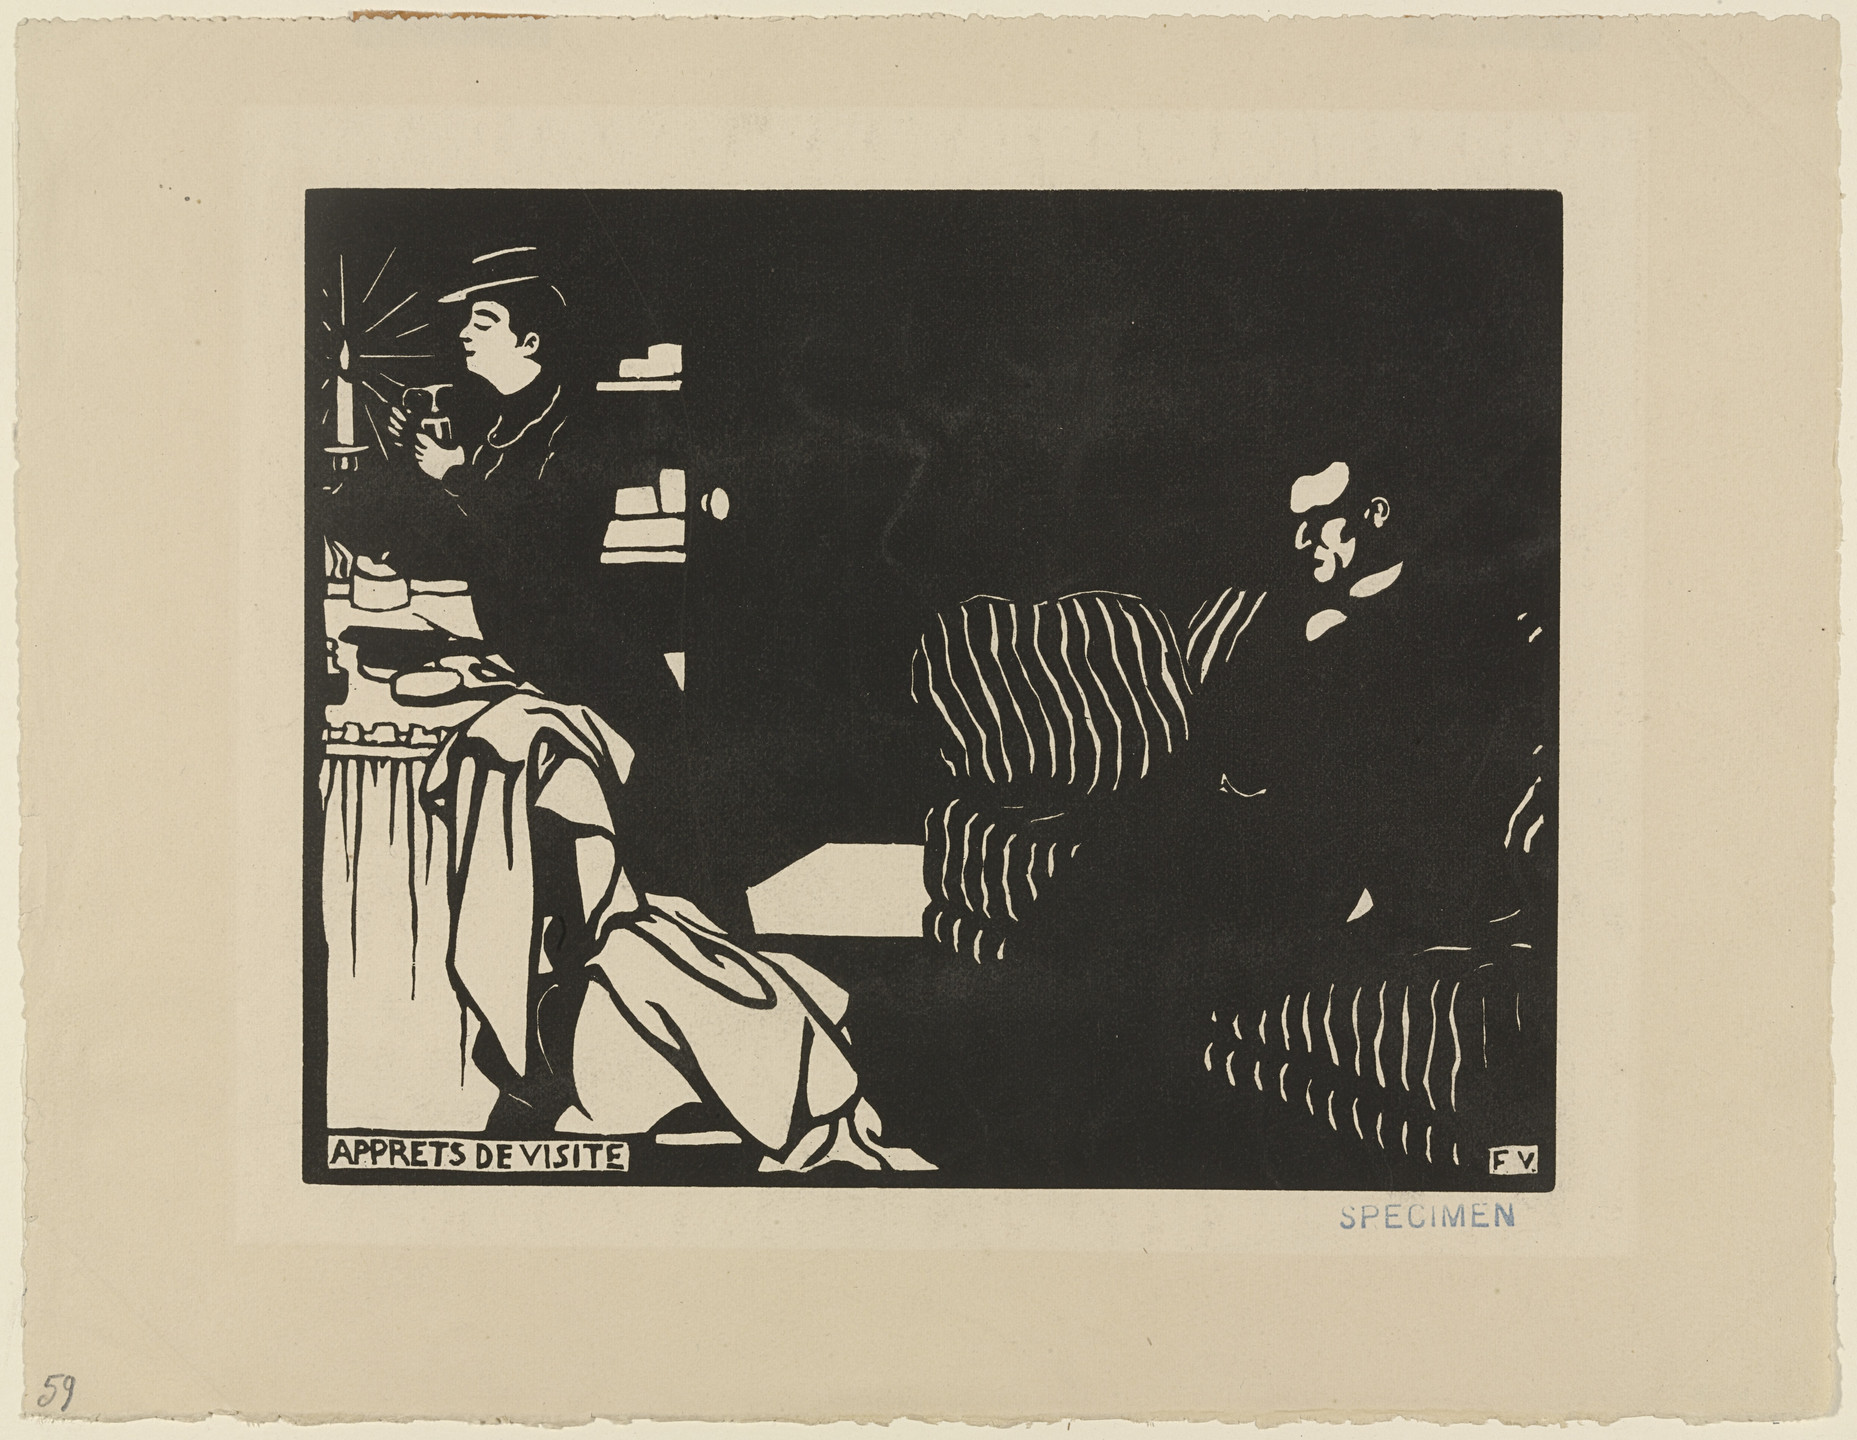 Félix Vallotton. Getting Ready for a Visit (Apprets de visite) from Intimacies (Intimités). 1897